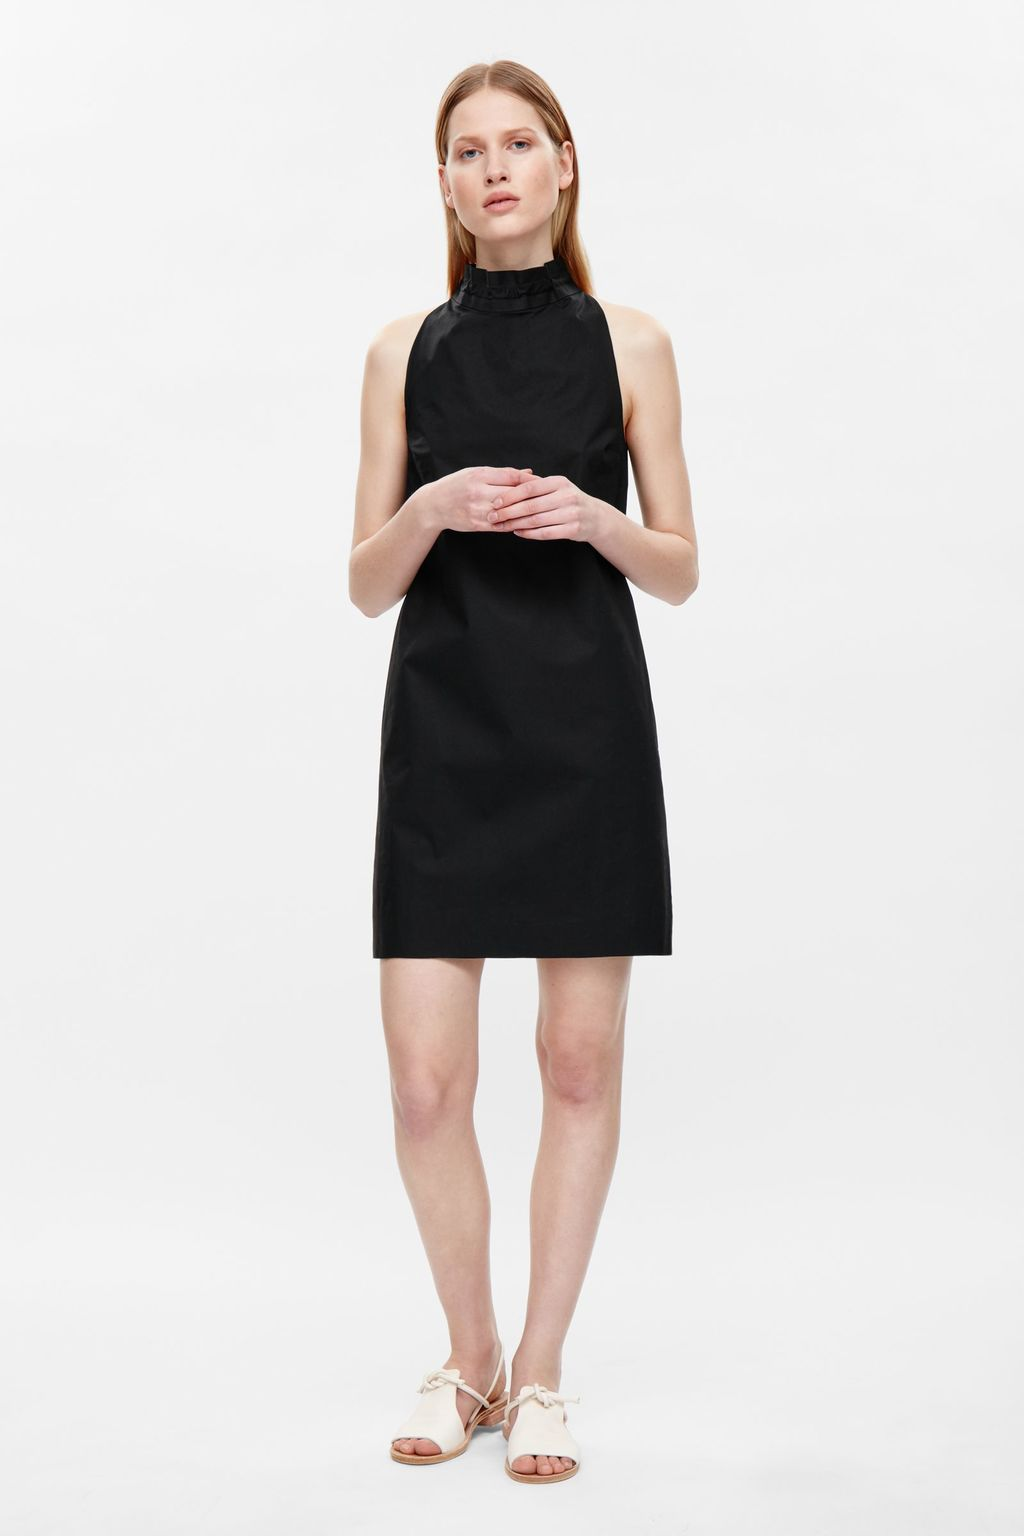 Dress With Tie Collar - style: shift; length: mid thigh; pattern: plain; sleeve style: sleeveless; neckline: high neck; predominant colour: black; occasions: casual; fit: body skimming; fibres: cotton - stretch; sleeve length: sleeveless; pattern type: fabric; texture group: other - light to midweight; season: s/s 2016; wardrobe: basic